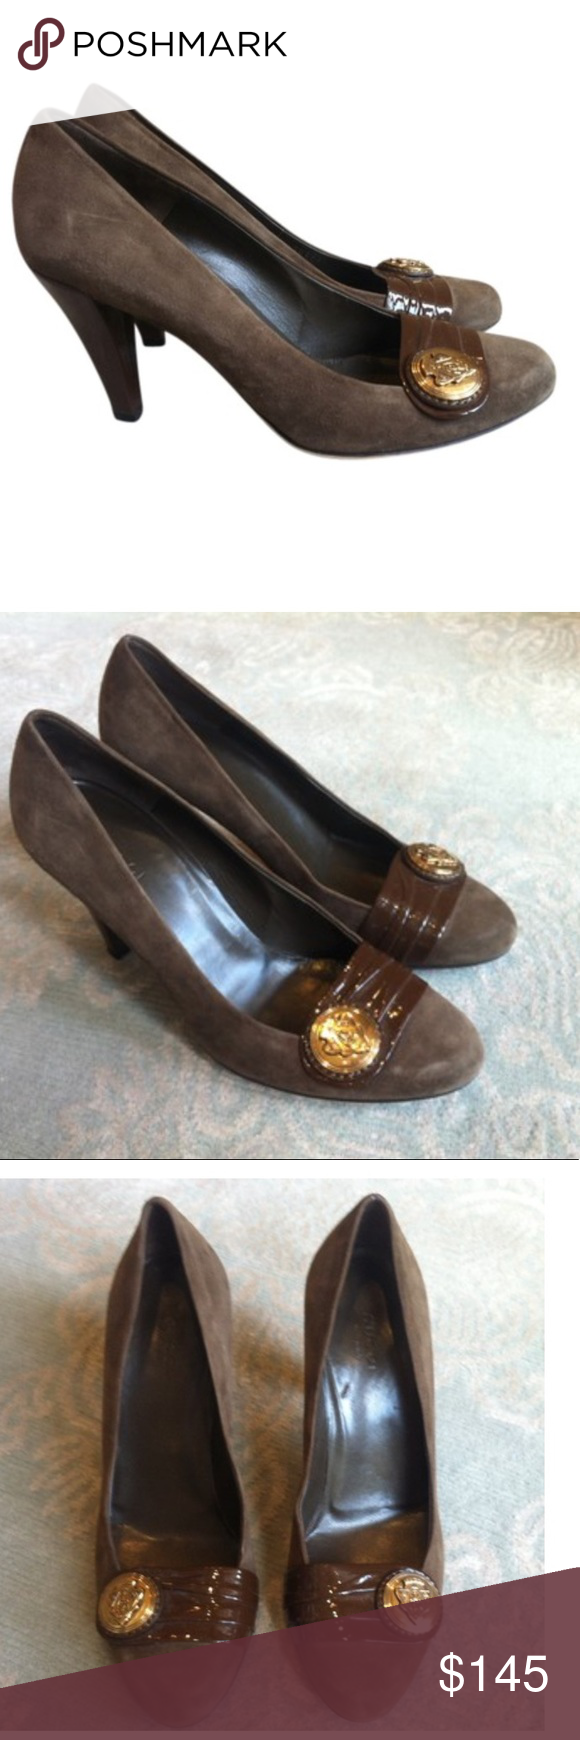 GUCCI BROWN SUEDE PUMPS ❤ Go from day to night w these exquisite  amp 4a60edf8809